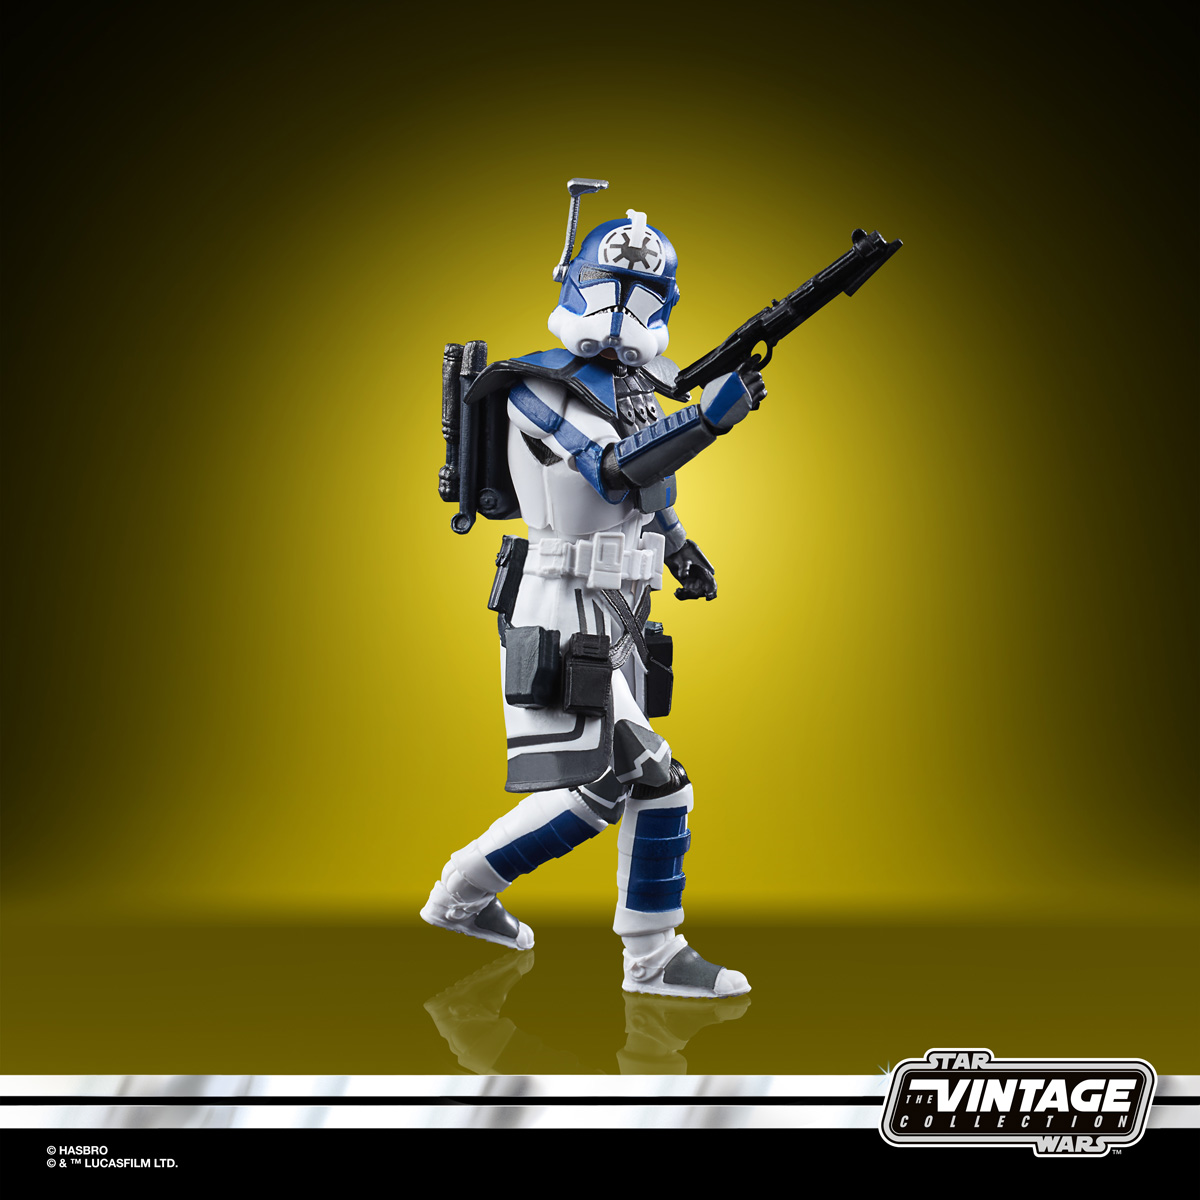 star-wars-the-vintage-collection-star-wars-the-clone-wars-501st-legion-arc-troopers-figure-3-pack-oop-5